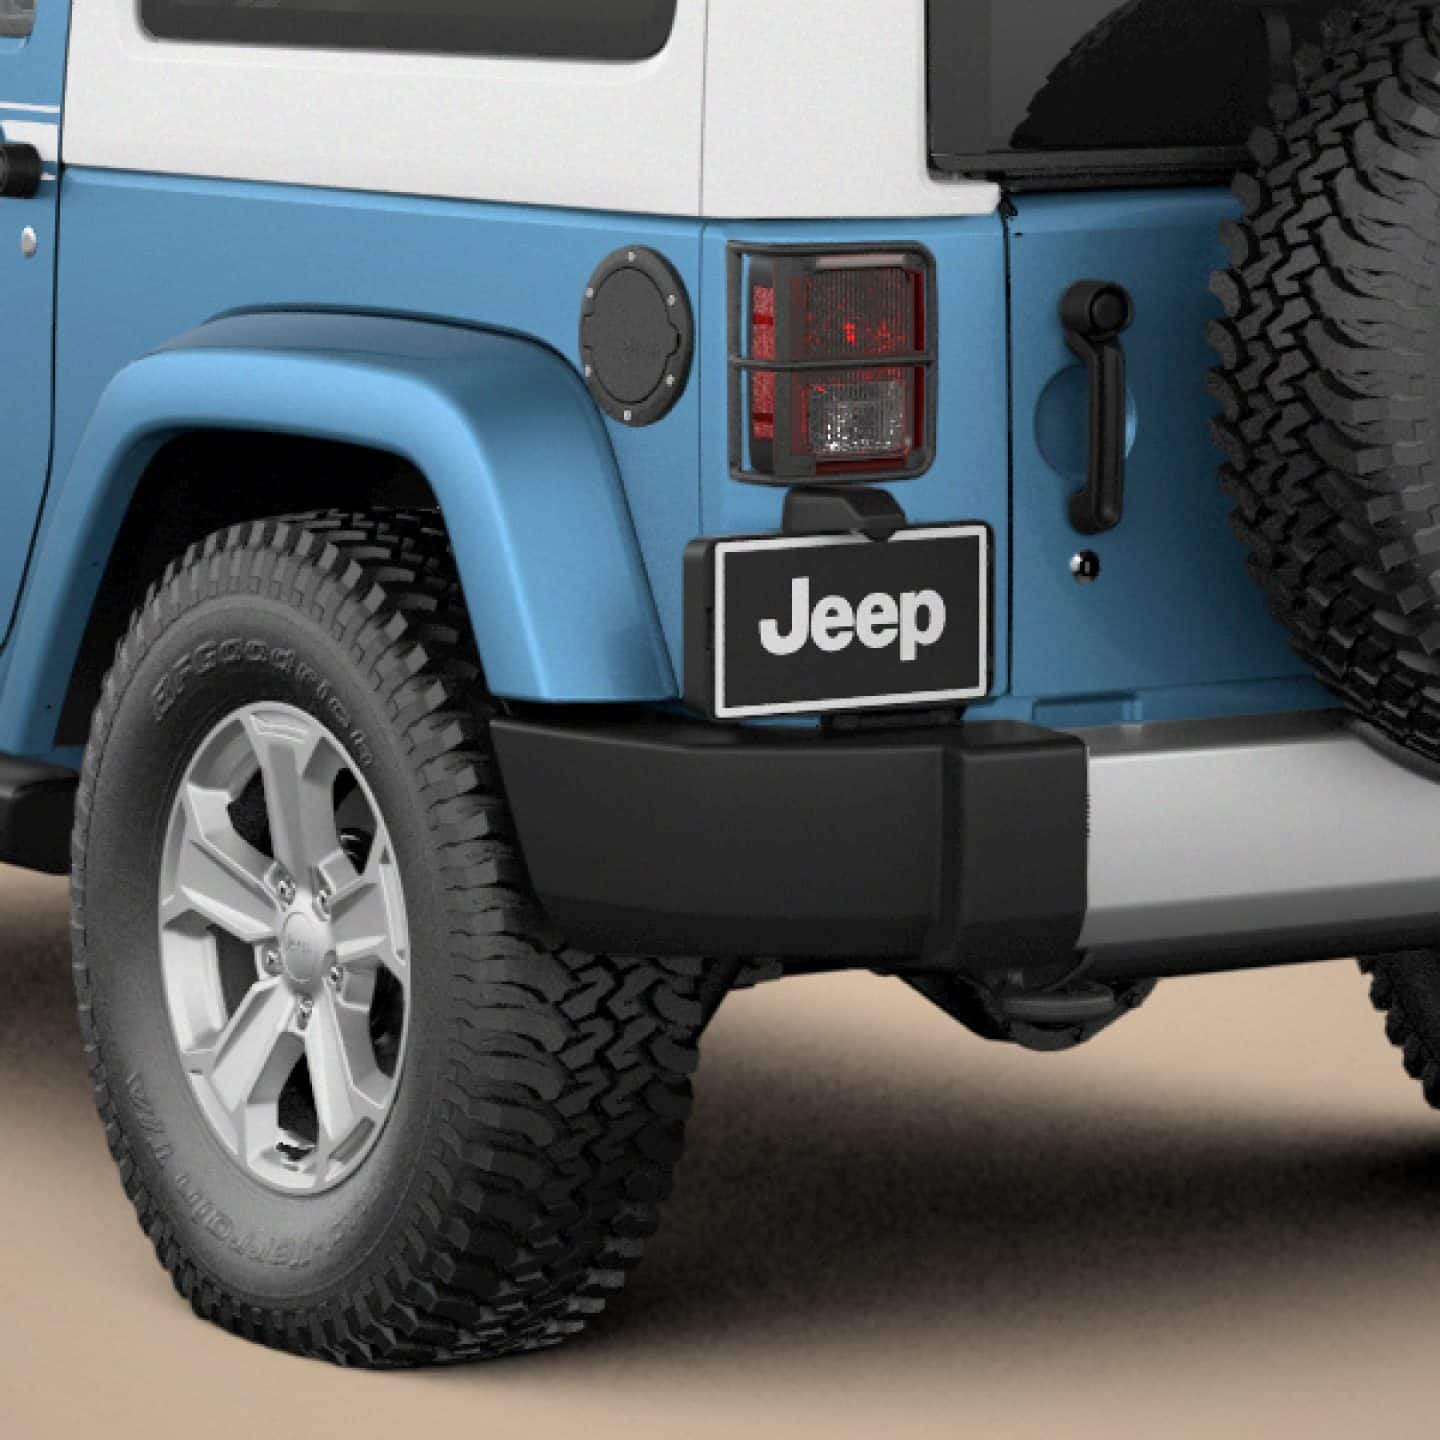 2017 Jeep Wrangler and Wrangler Unlimited Chief